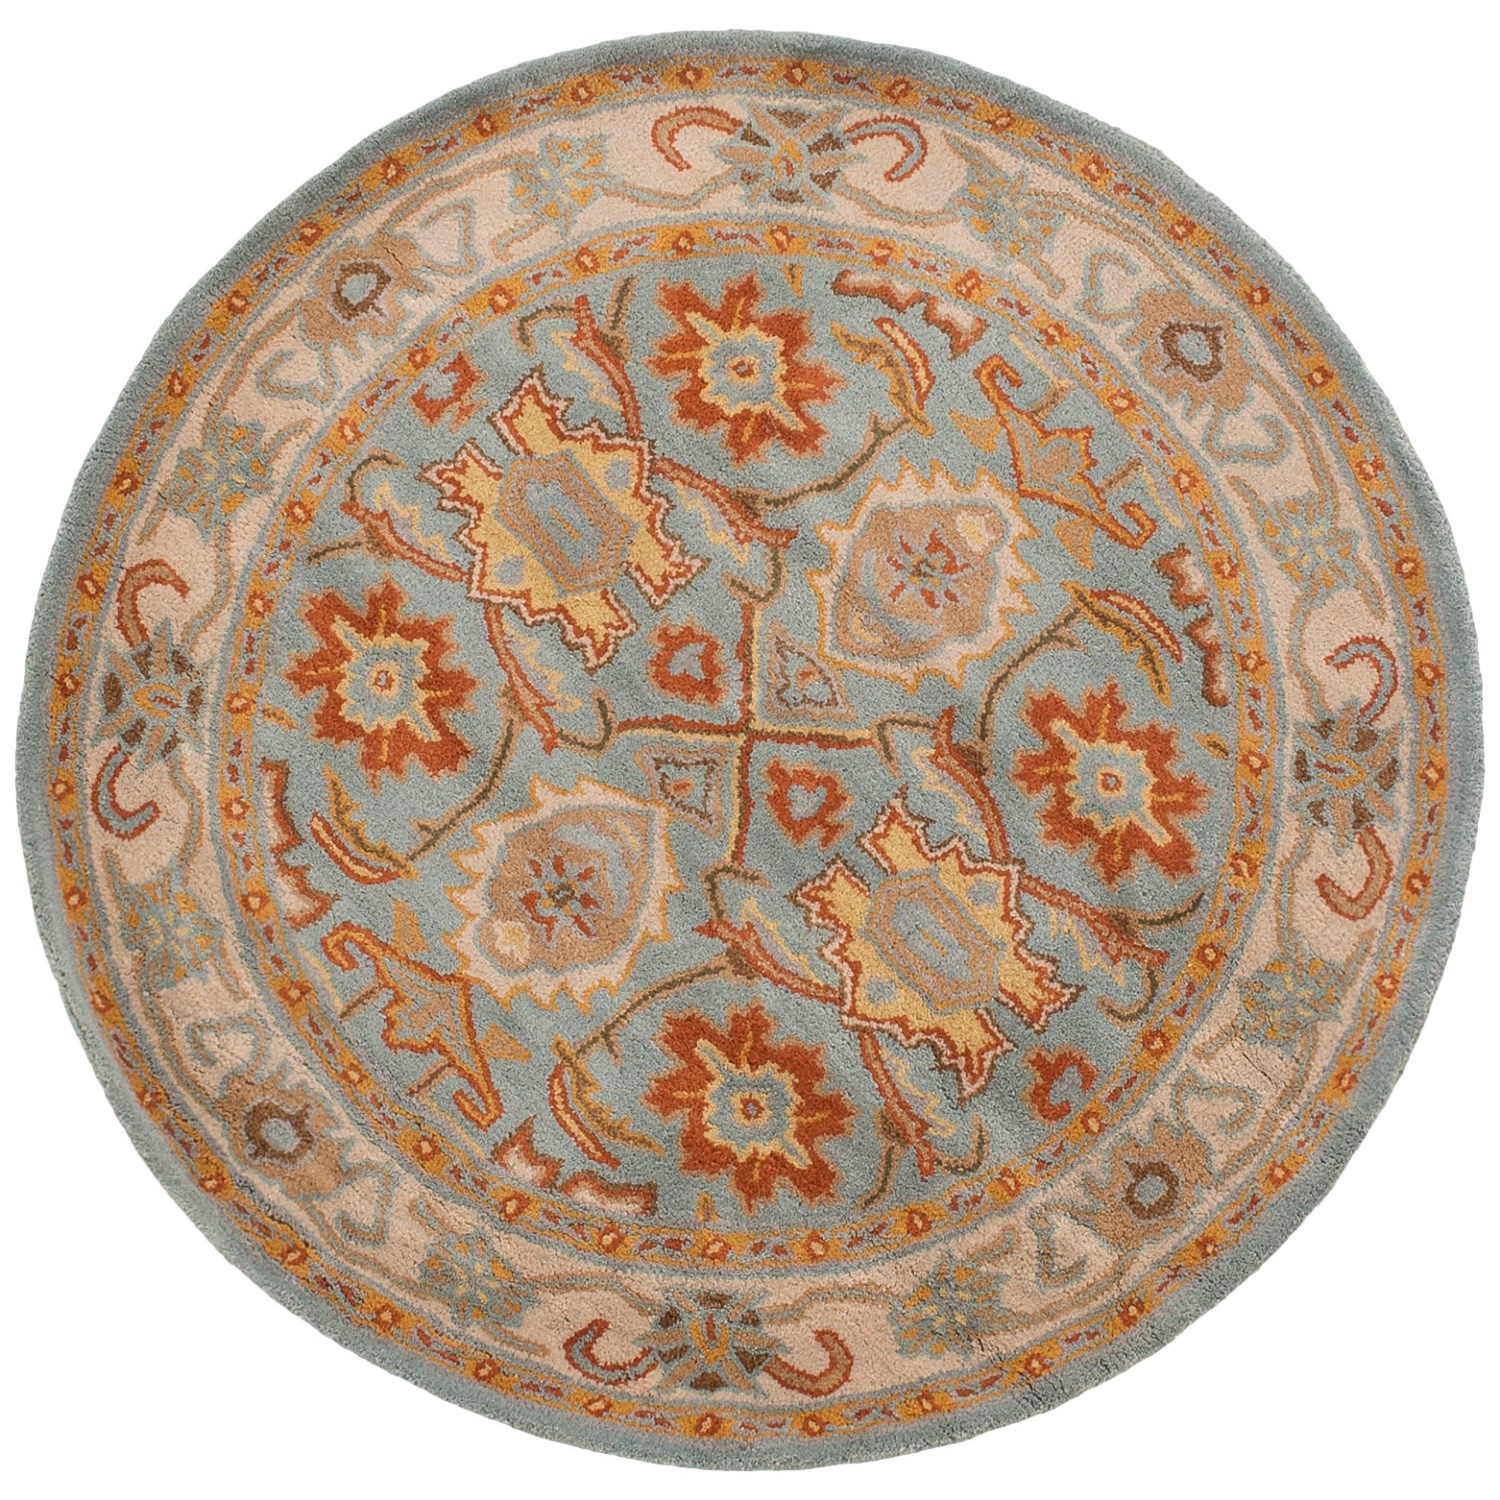 Stella Collection Hand Tufted Area Rug In Beige Light: Safavieh Heritage Collection Light Blue And Ivory Round